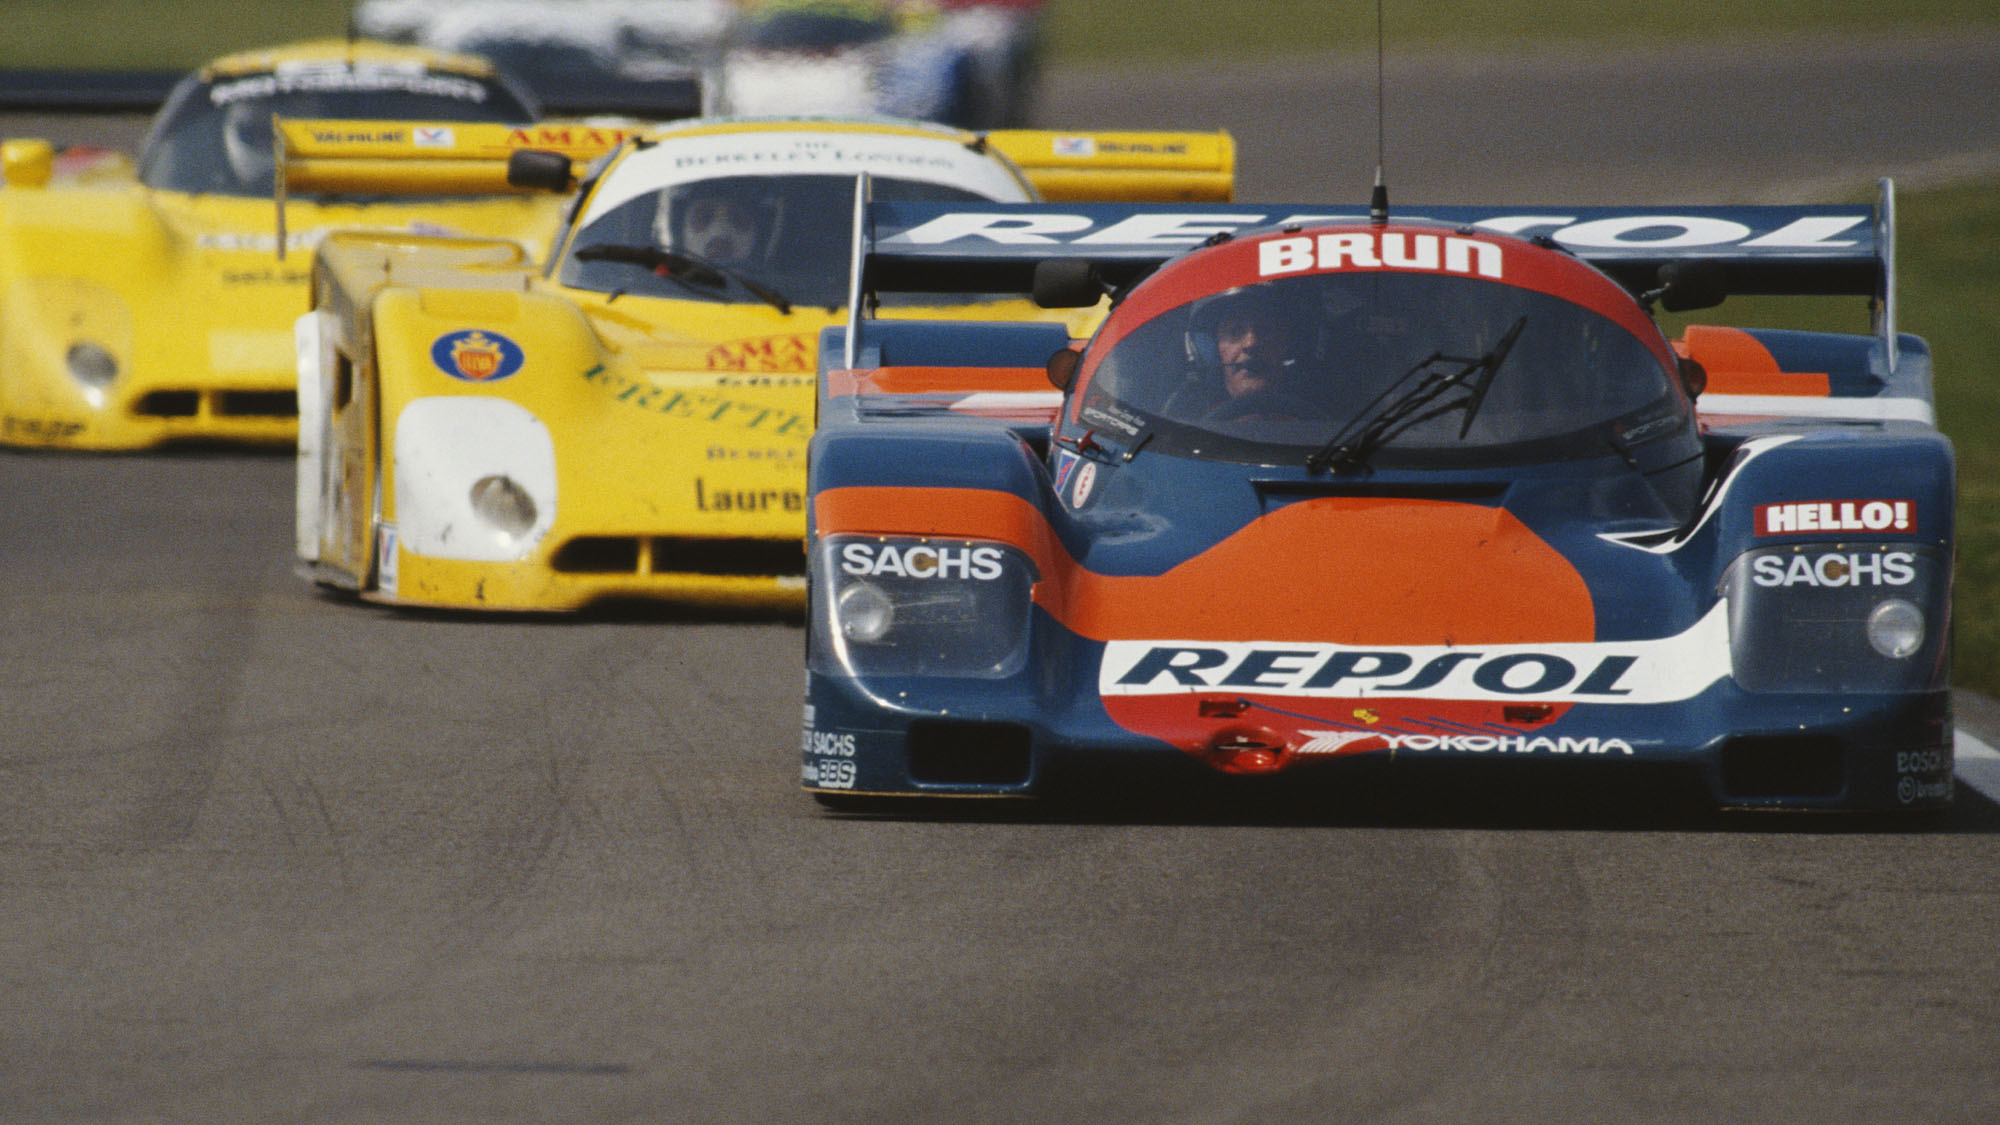 Walter Brun of Switzerland drives the #16 Repsol Brun Motorsport Porsche 962 C during the FIA World Sportscar Prototype Championship Empire Trophy on 20th May 1990 at the Silverstone Circuit in Silverstone, United Kingdom.(Photo by Darrell Ingham/Getty Images)